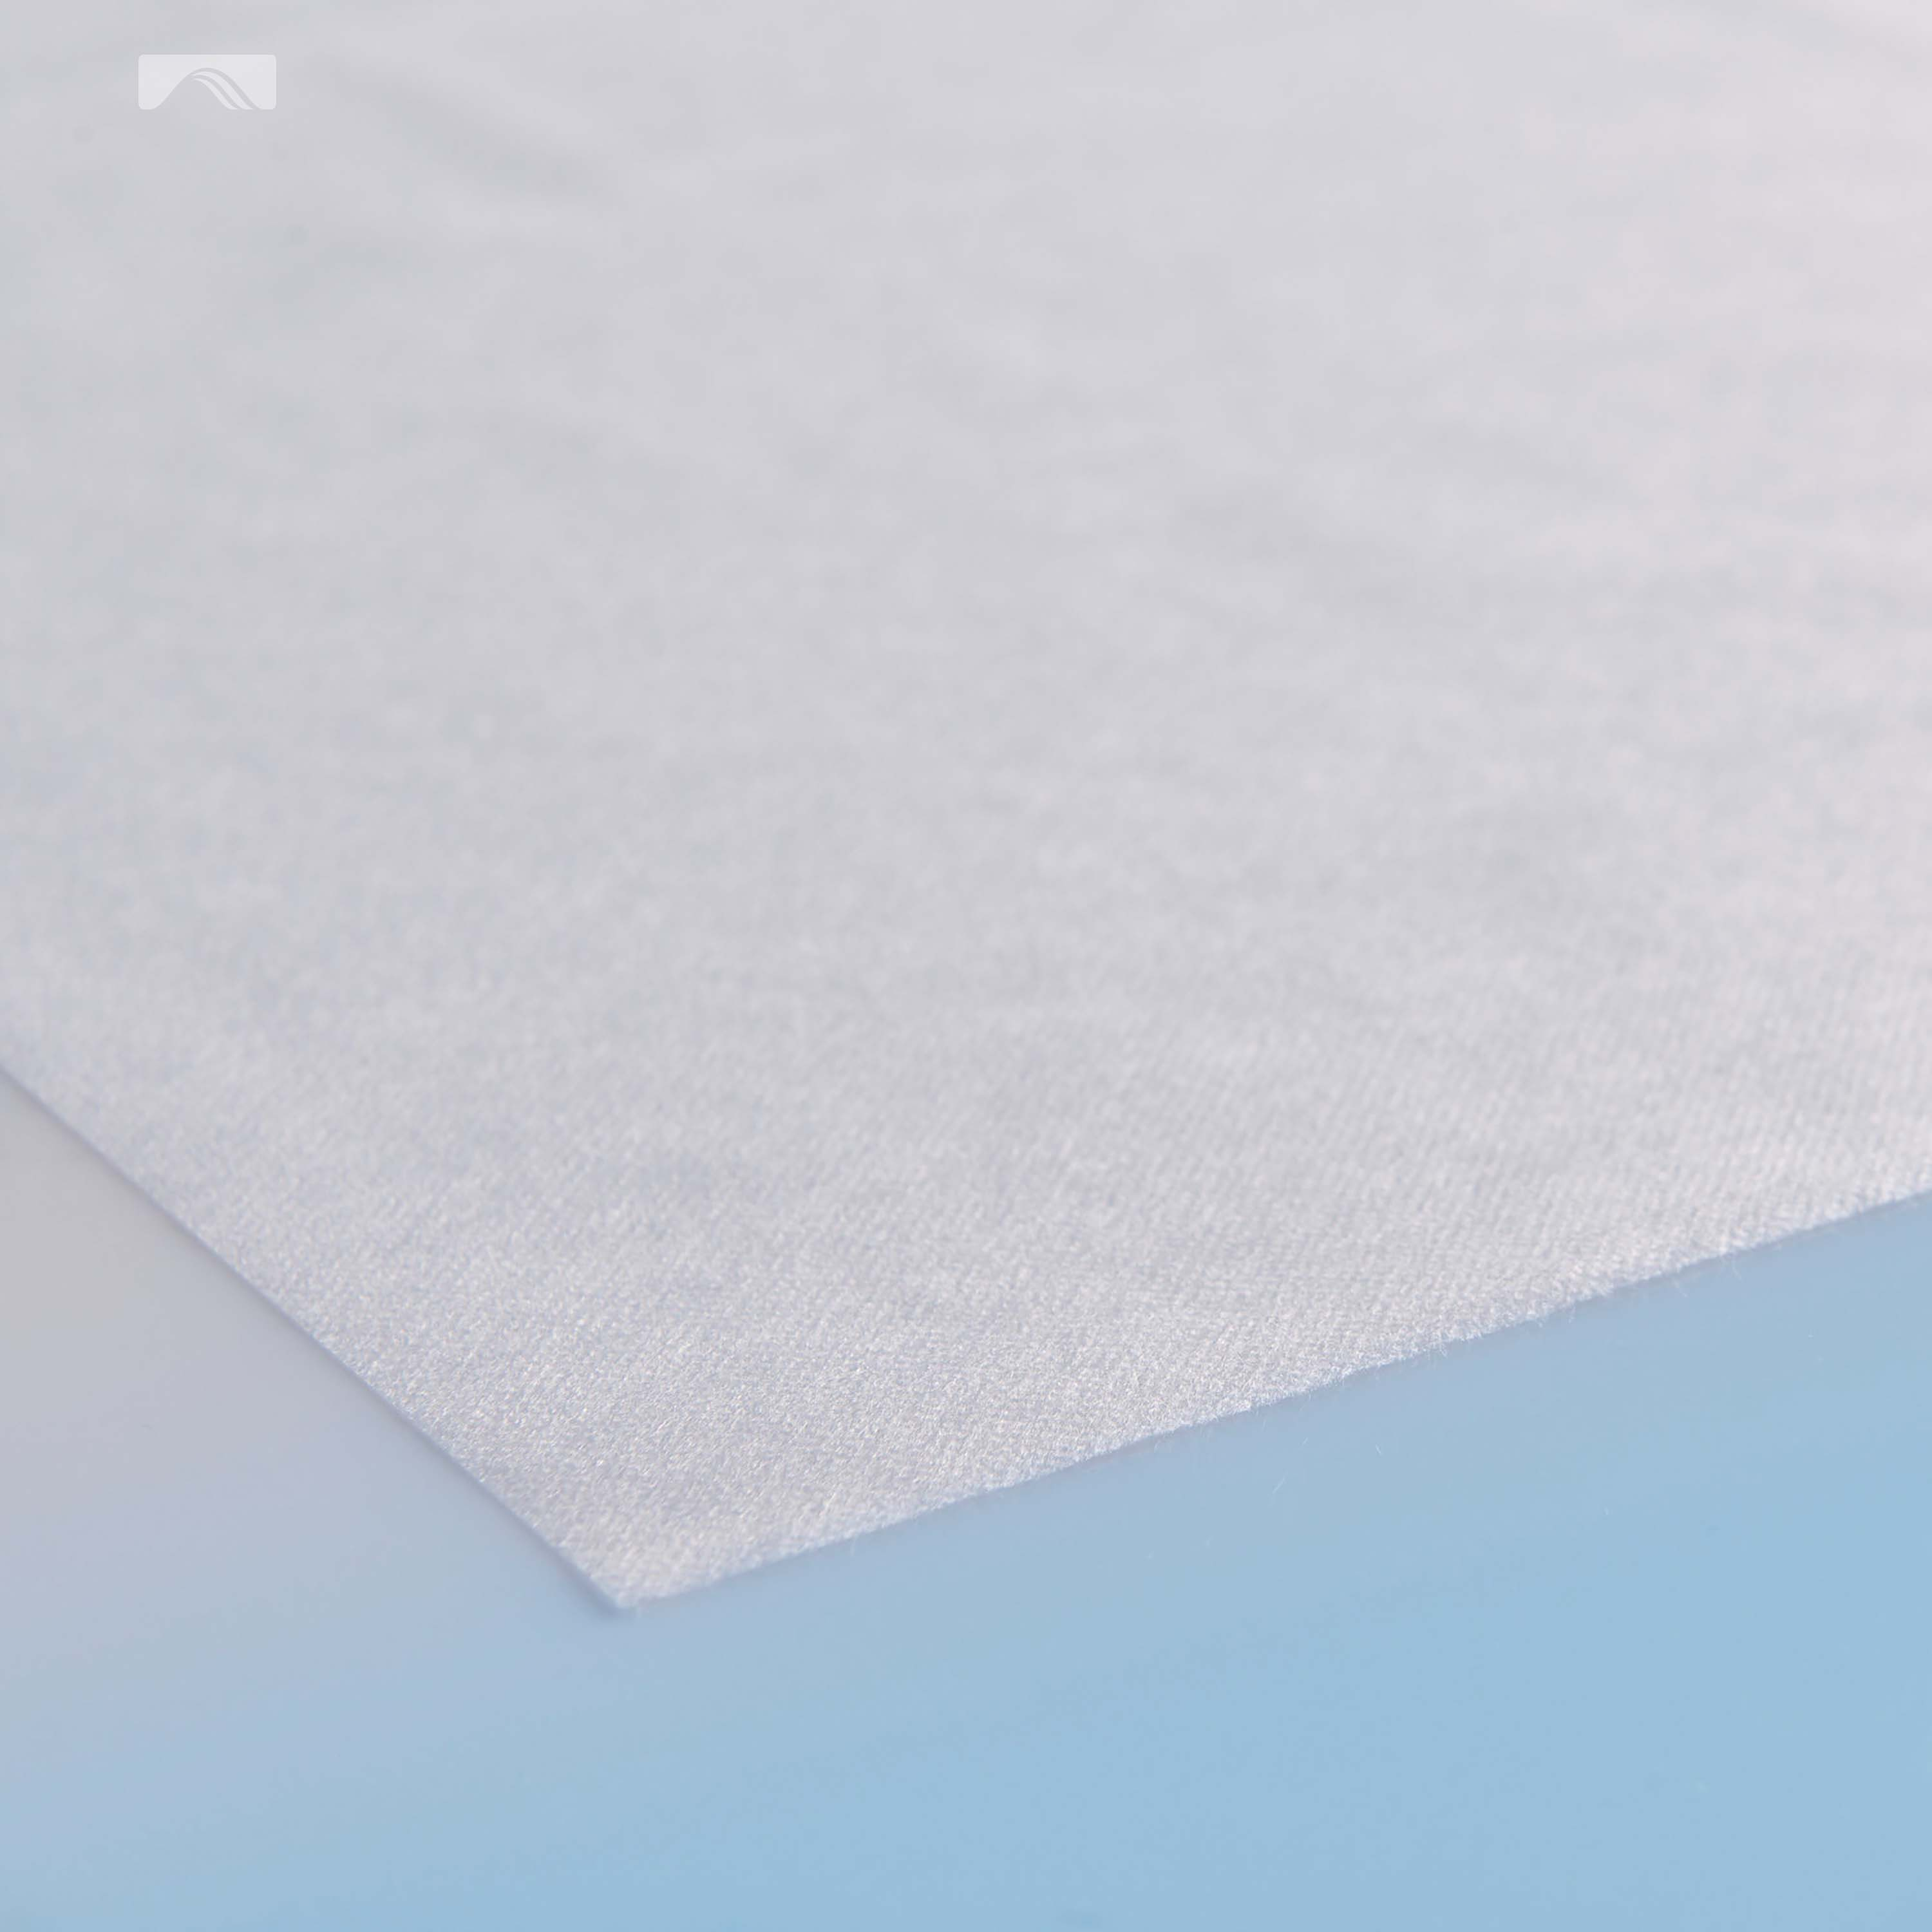 NONWOVEN INTERLINING | CE 1023 | 85 | Charcoal 900 x 200